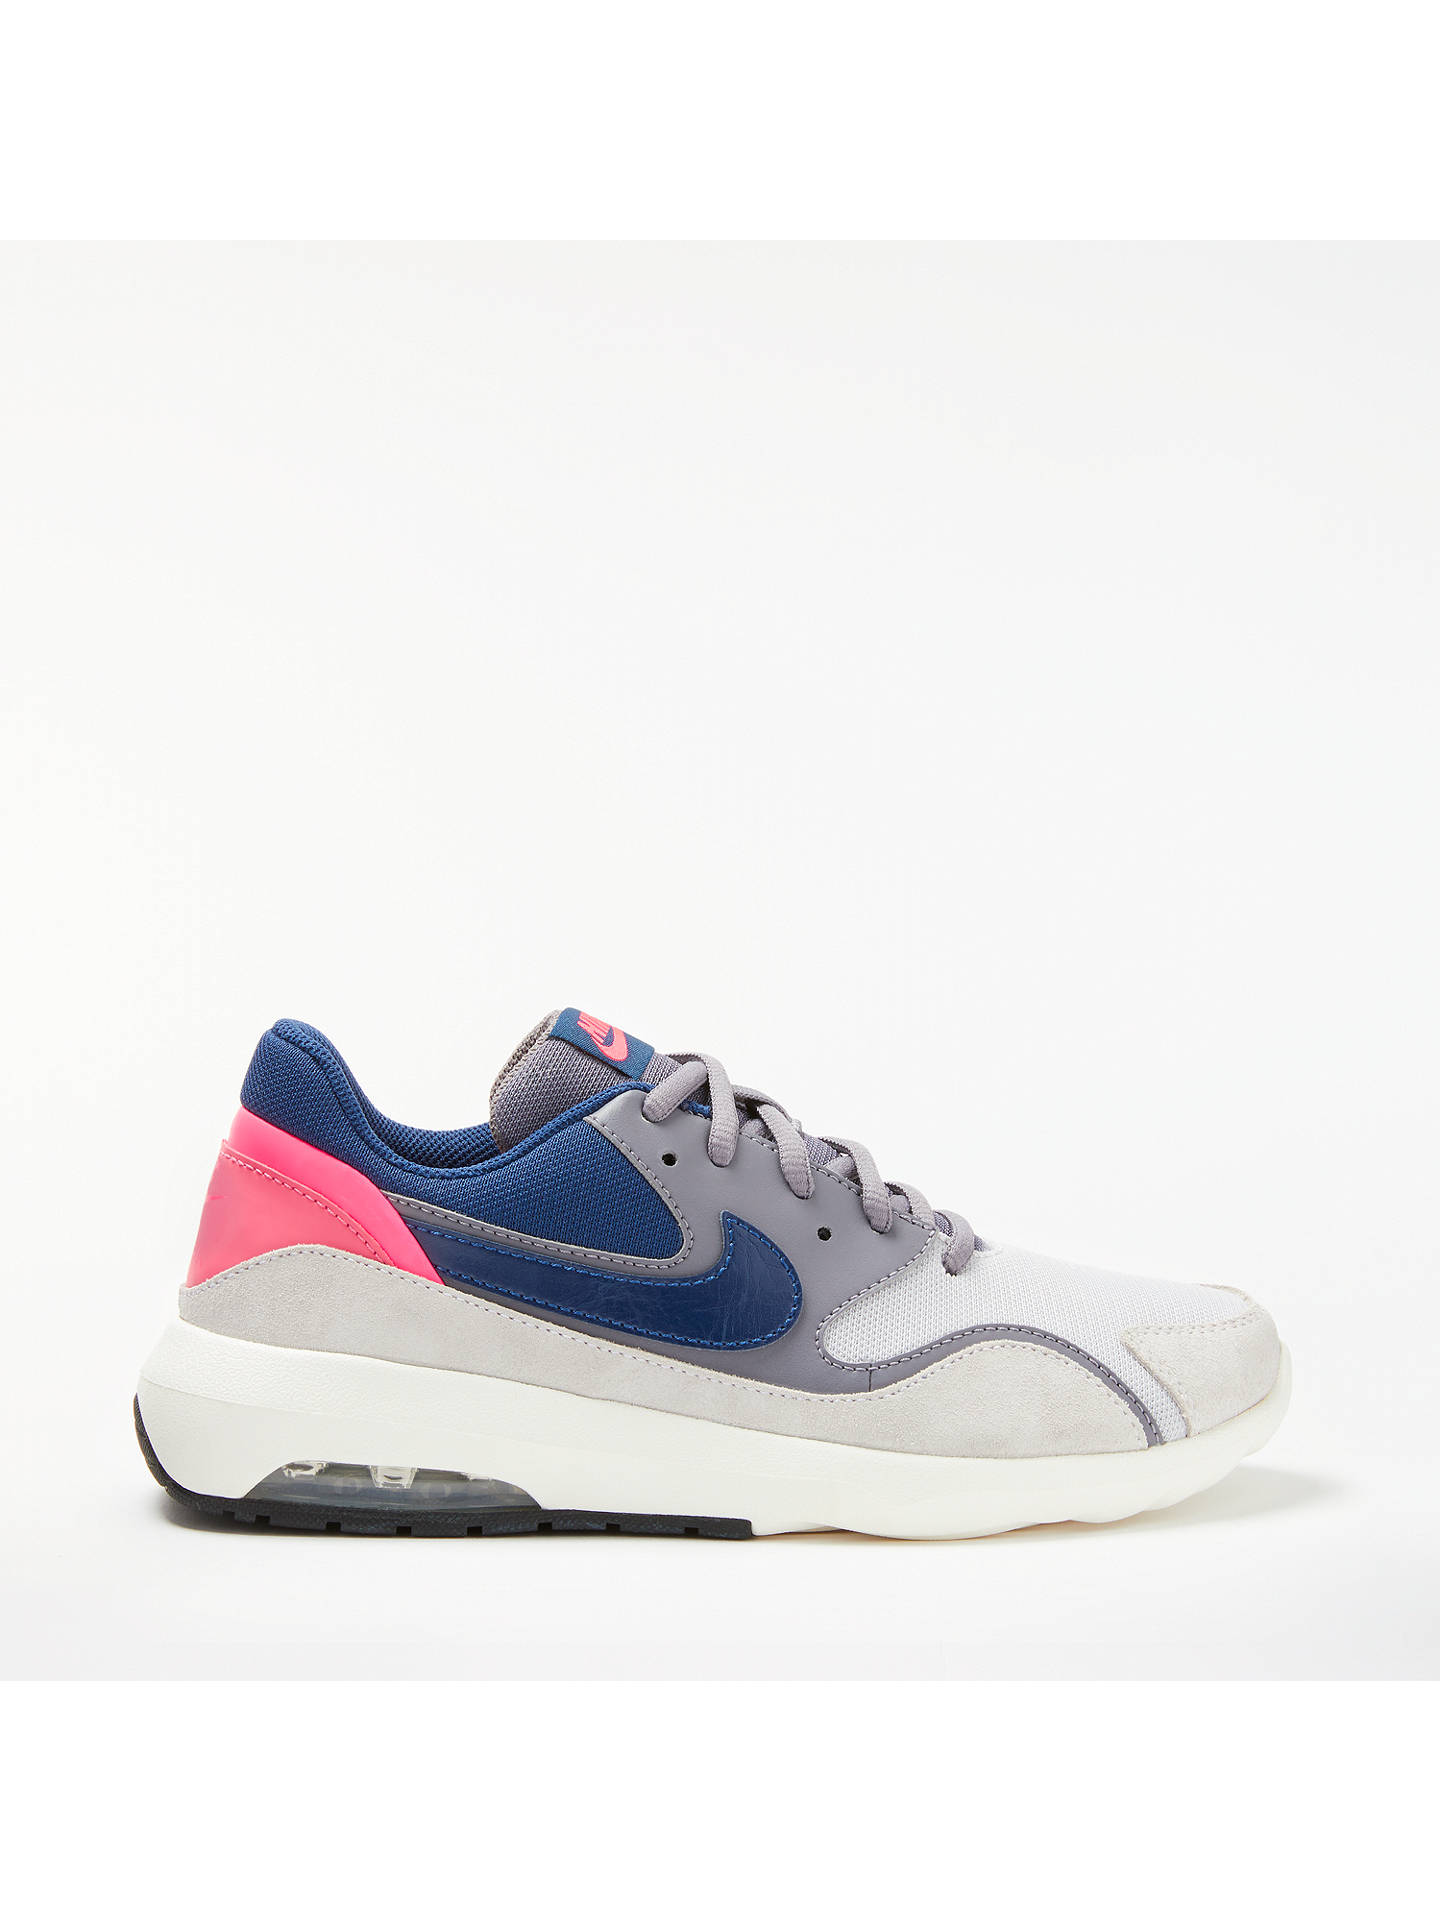 finest selection ed253 fc902 Buy Nike Air Max Nostalgic Women's Trainers, Grey/Blue, 4 Online at  johnlewis ...